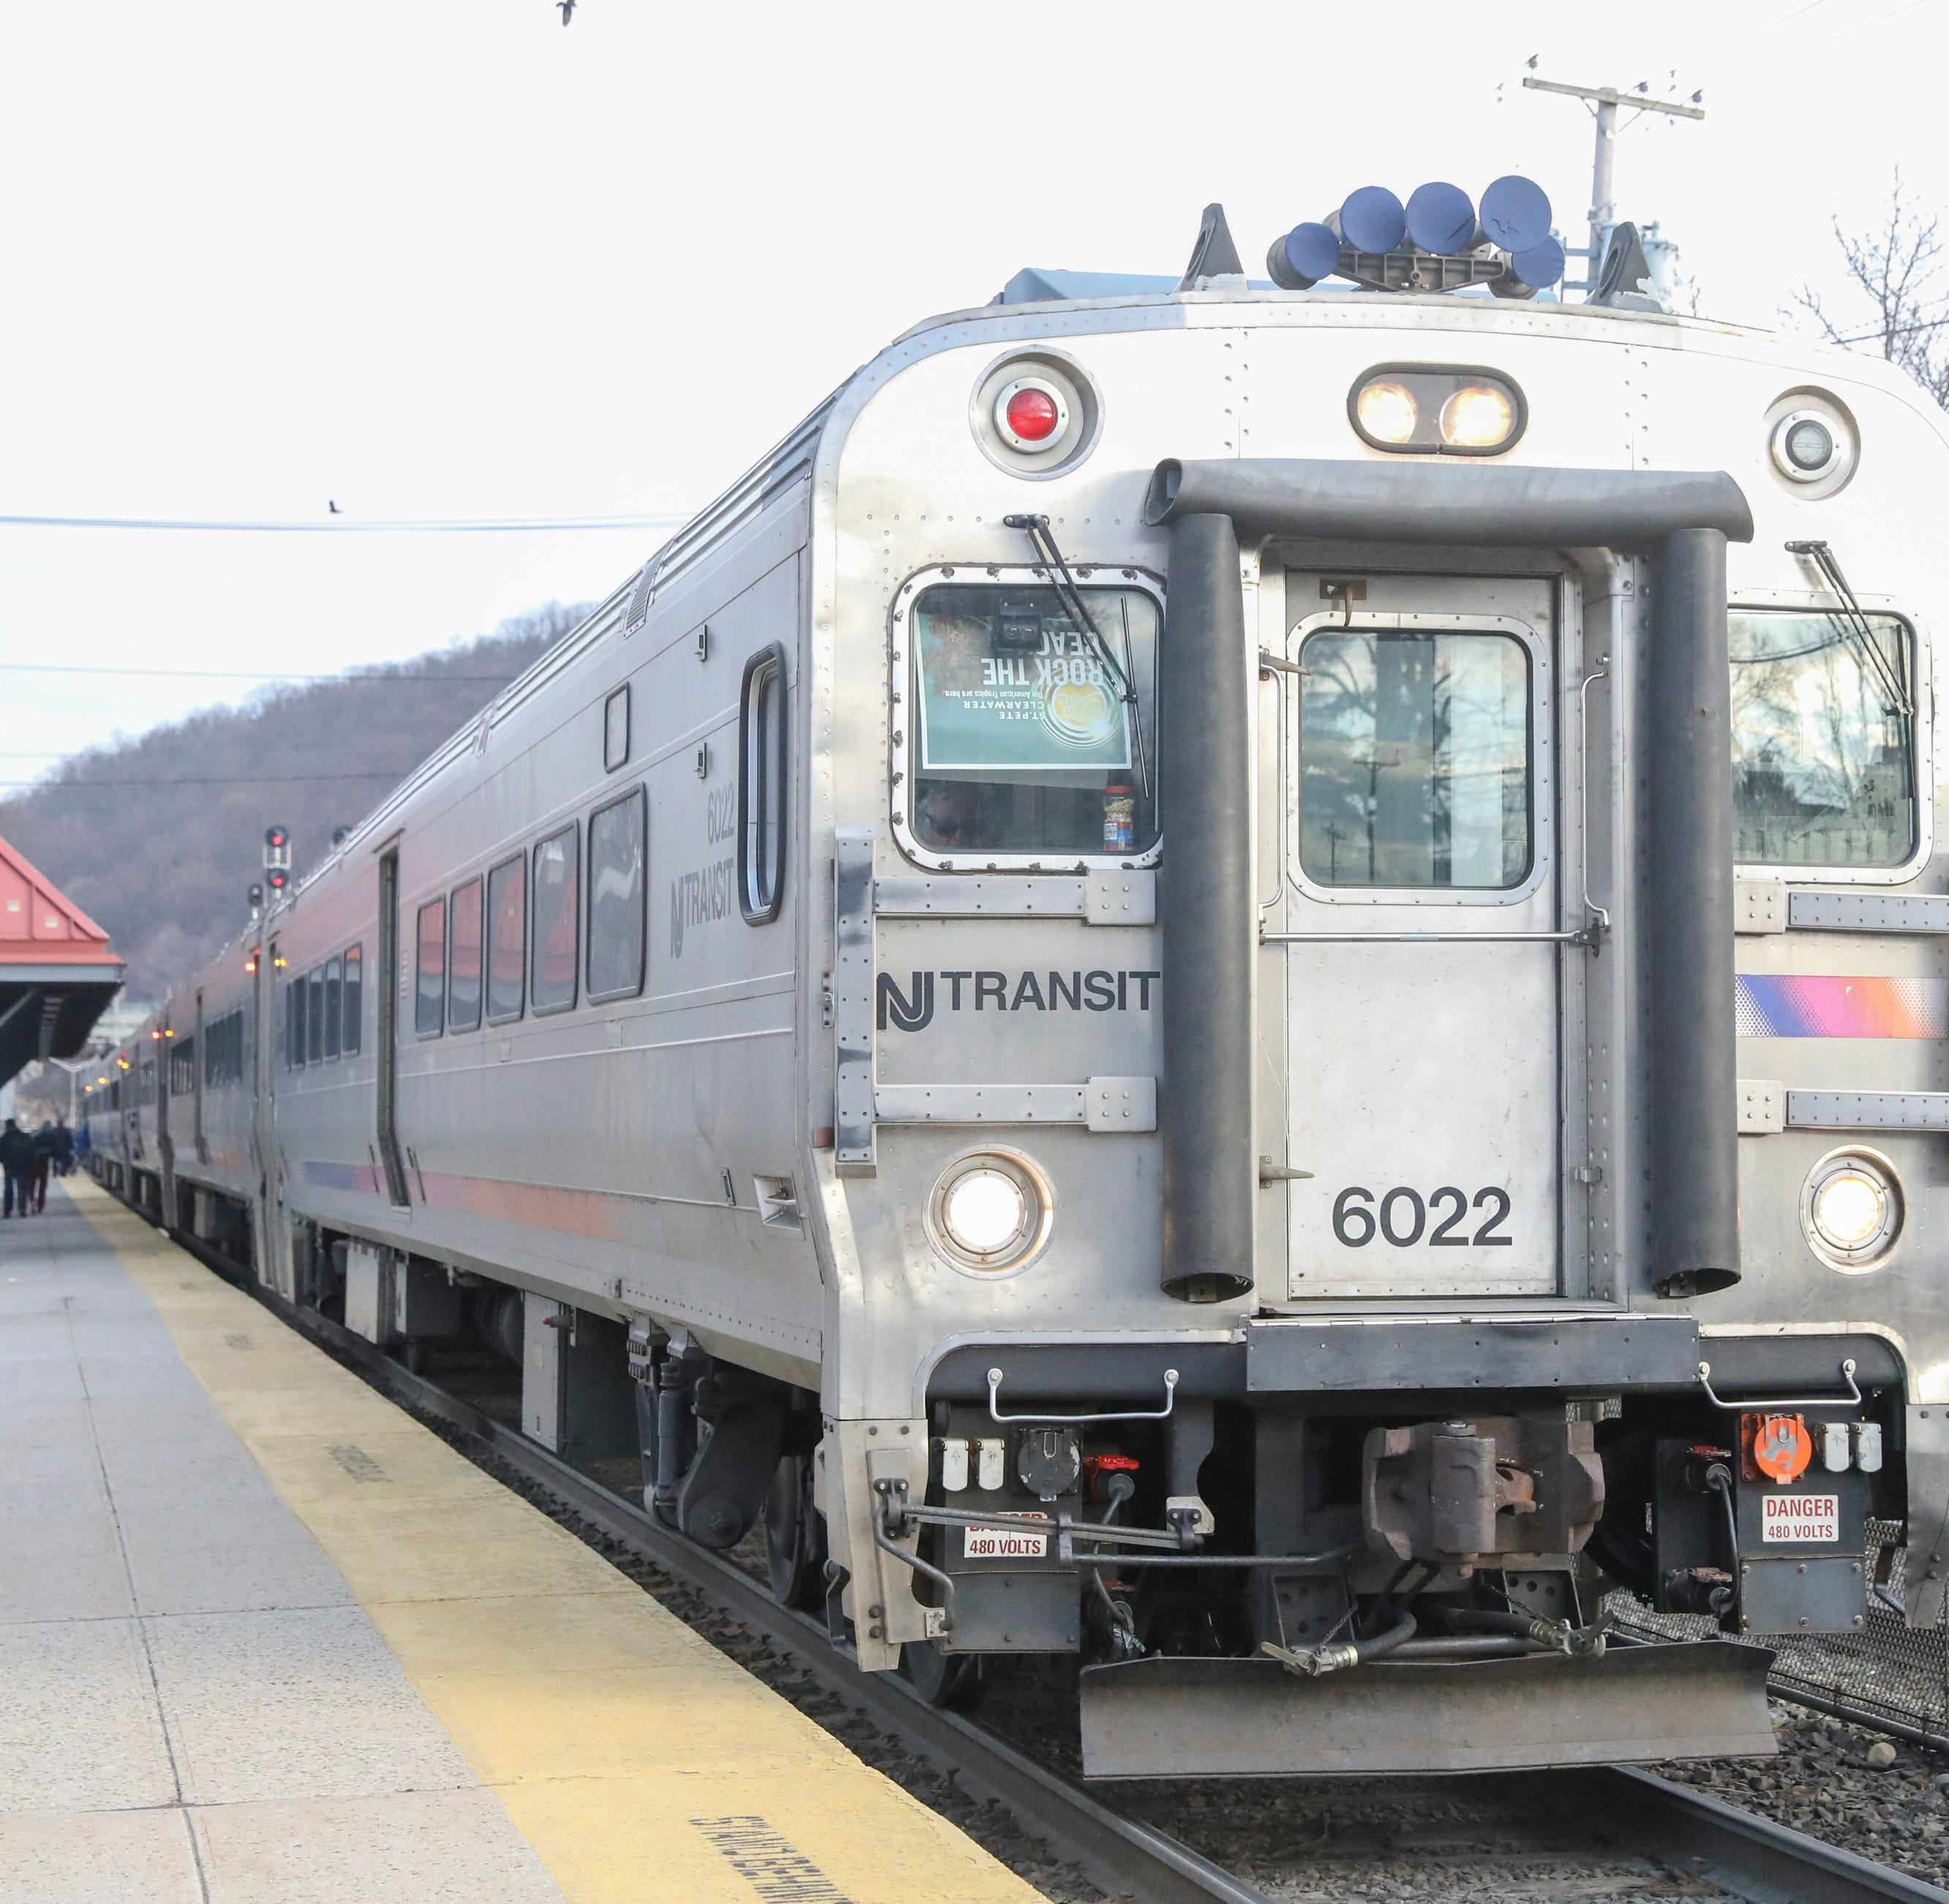 Metro-North chief responds: We'll work closely with NJ Transit on west-of-Hudson service